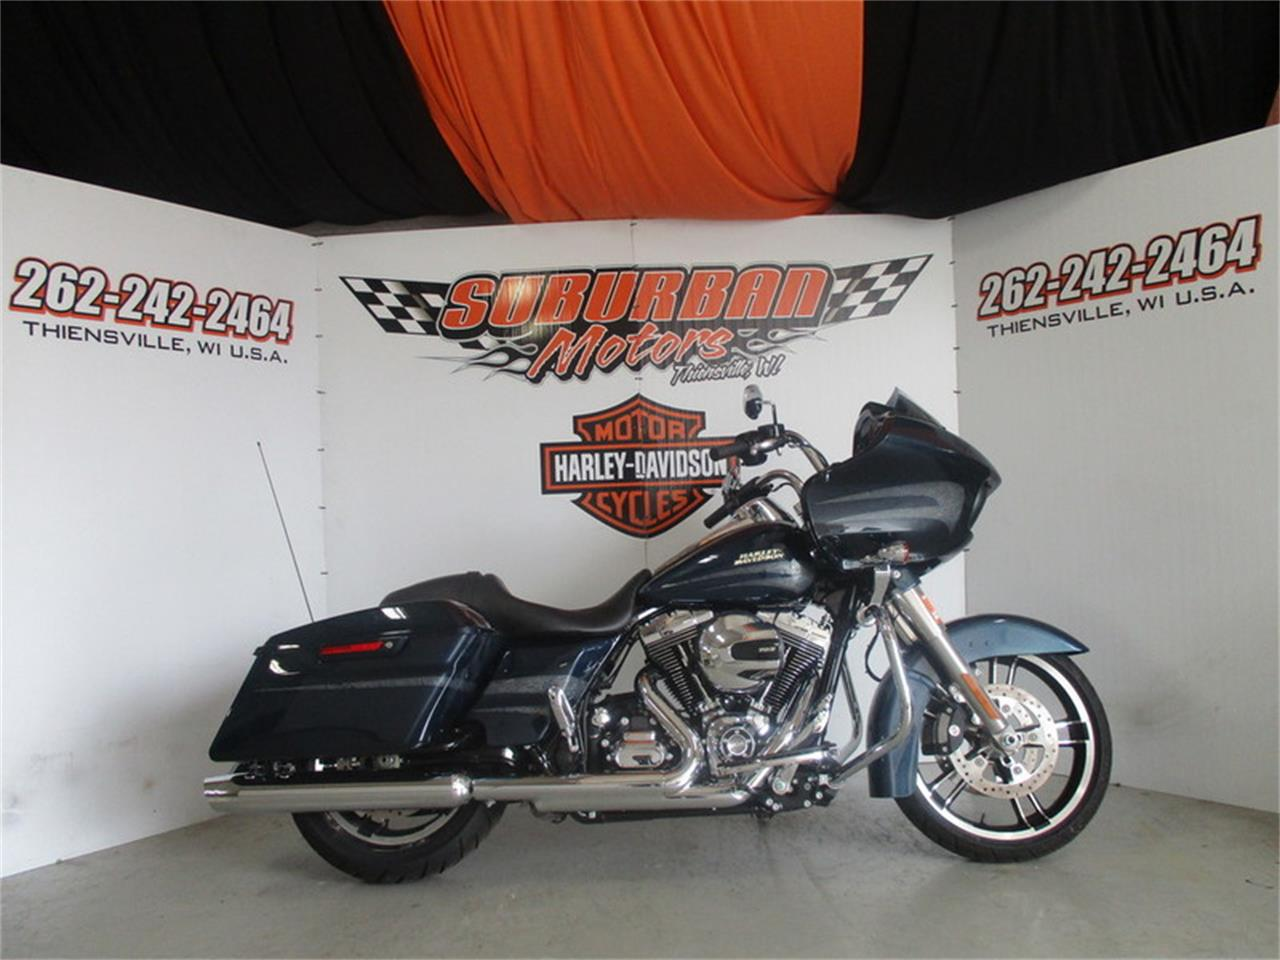 Large Picture of '16 FLTRXS - Road Glide® Special - $19,212.00 Offered by Suburban Motors, Inc. - M9FJ